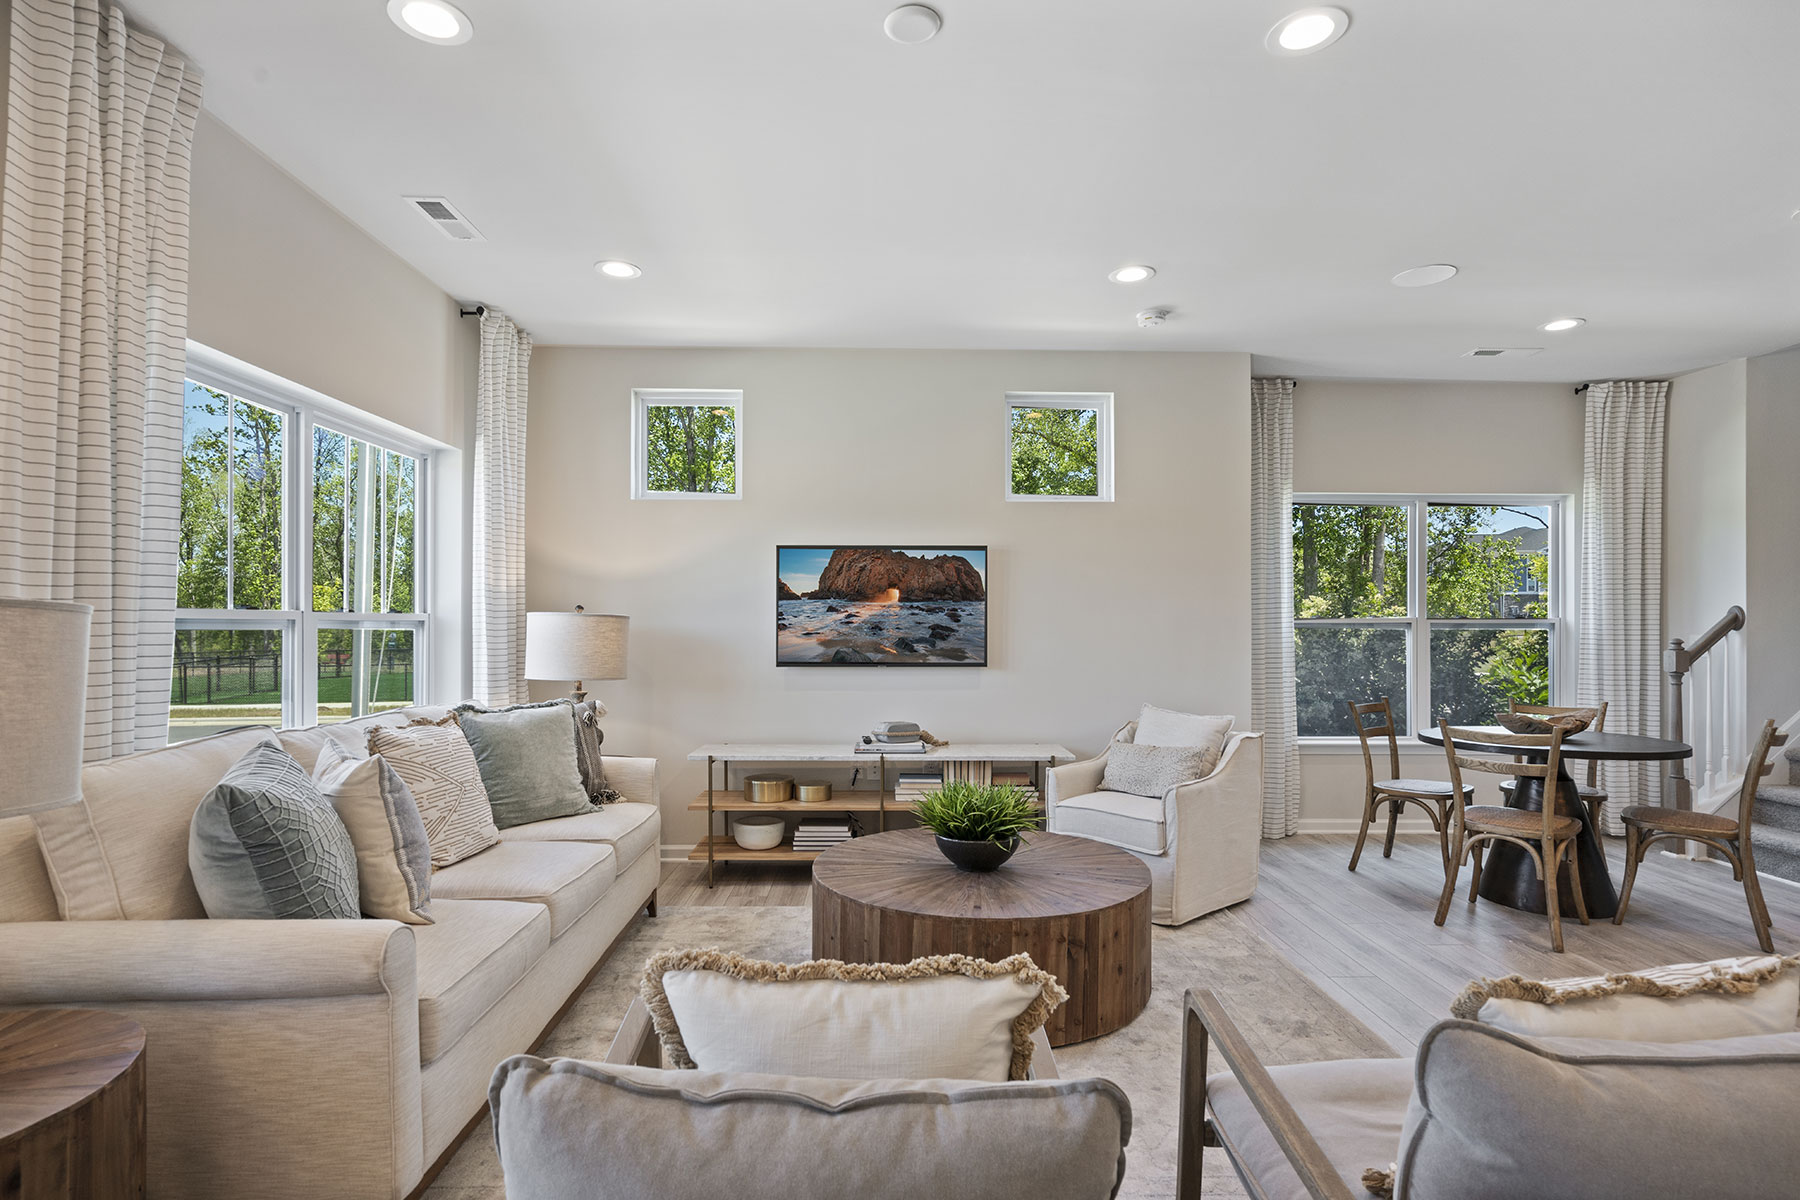 Bengal Townes Greatroom in Fuquay-Varina North Carolina by Mattamy Homes